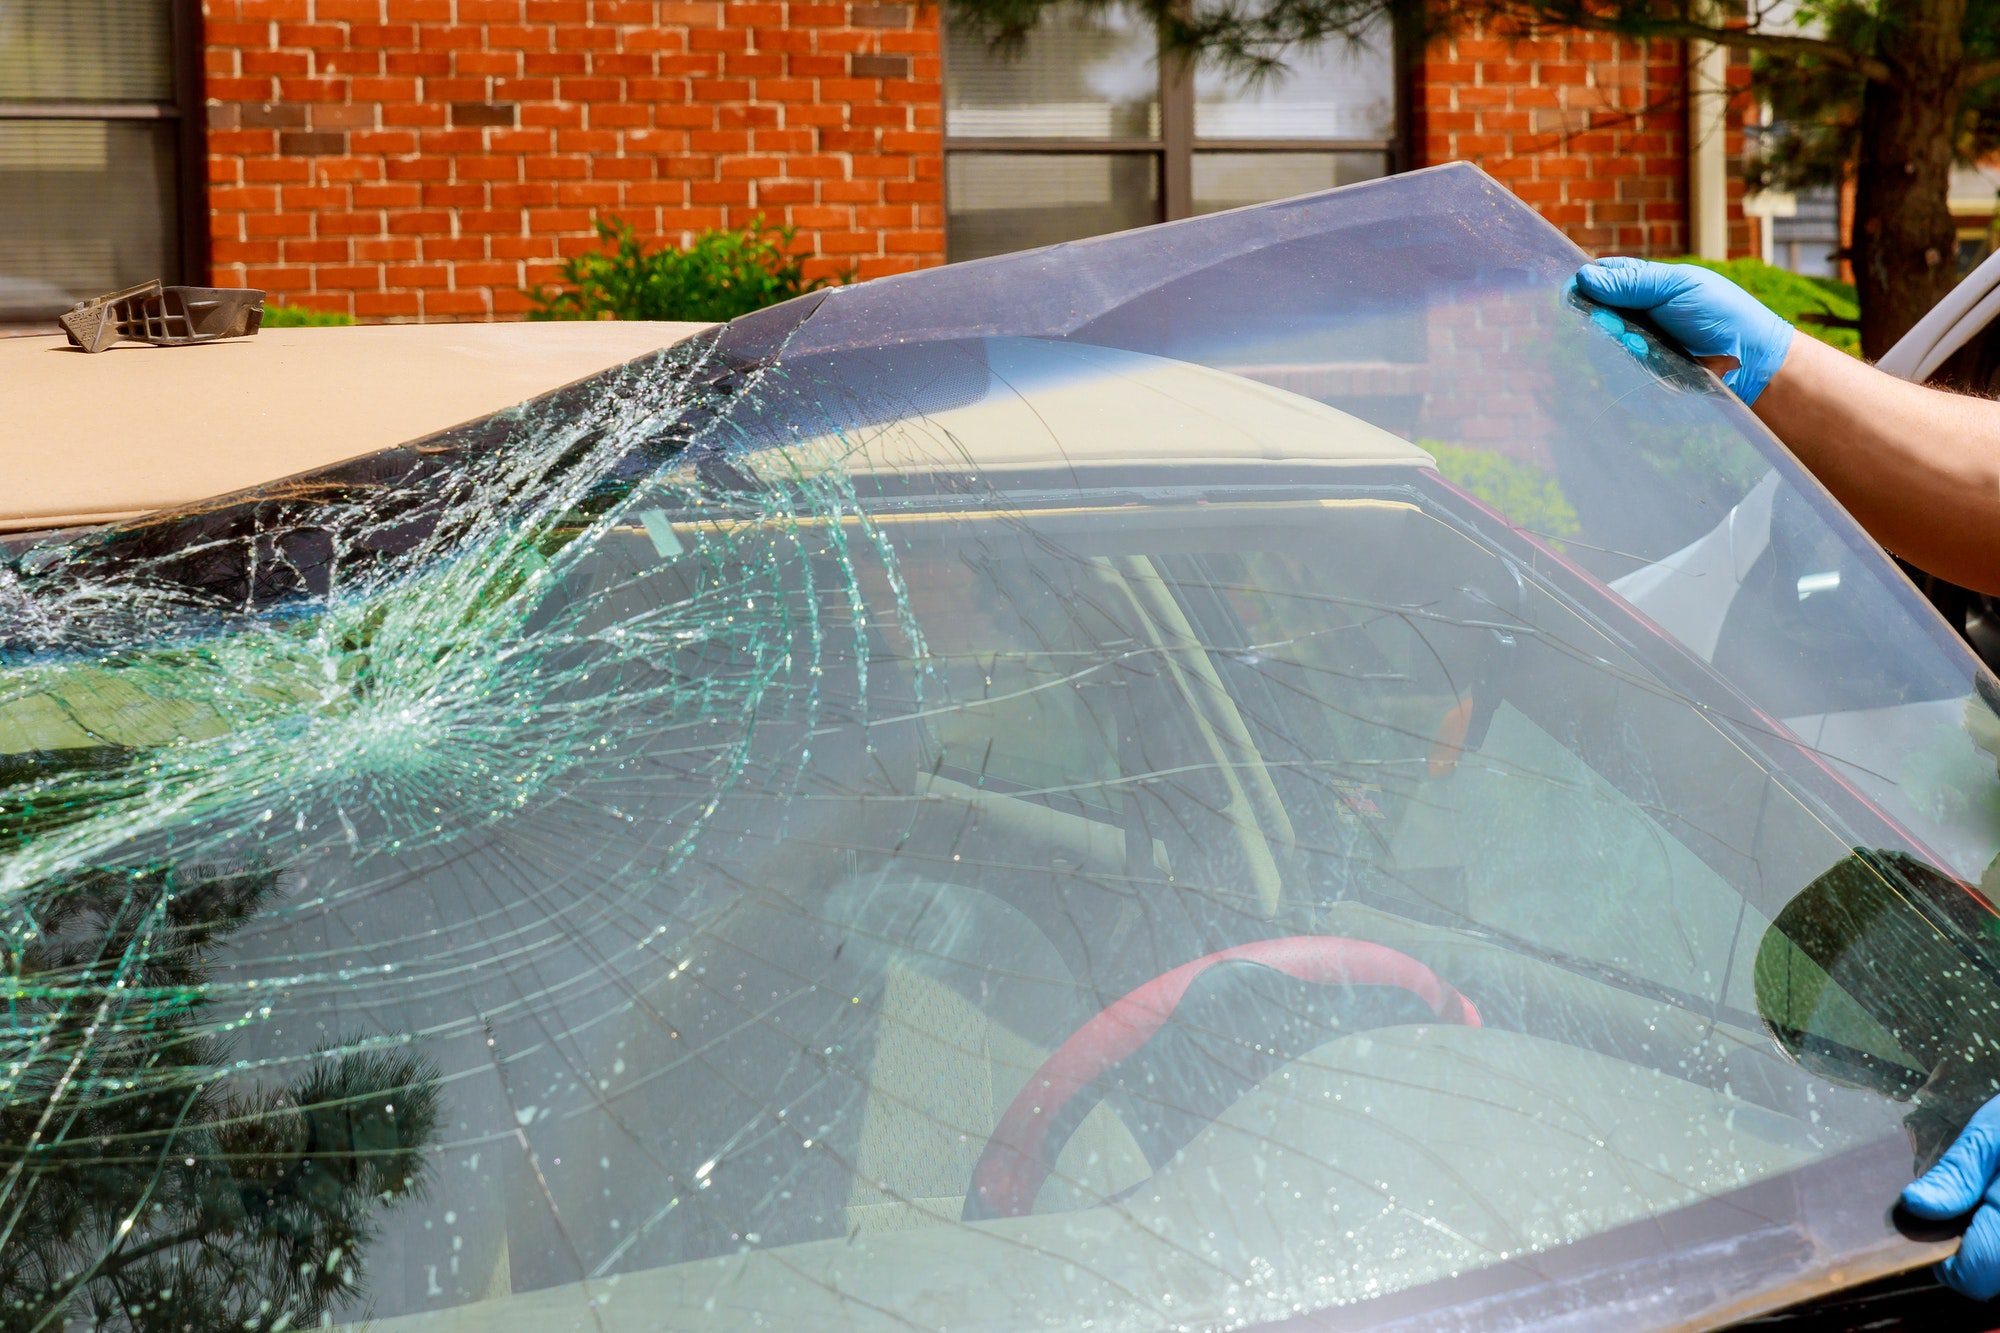 Workers remove crashed windshield of a car in auto oudoors service